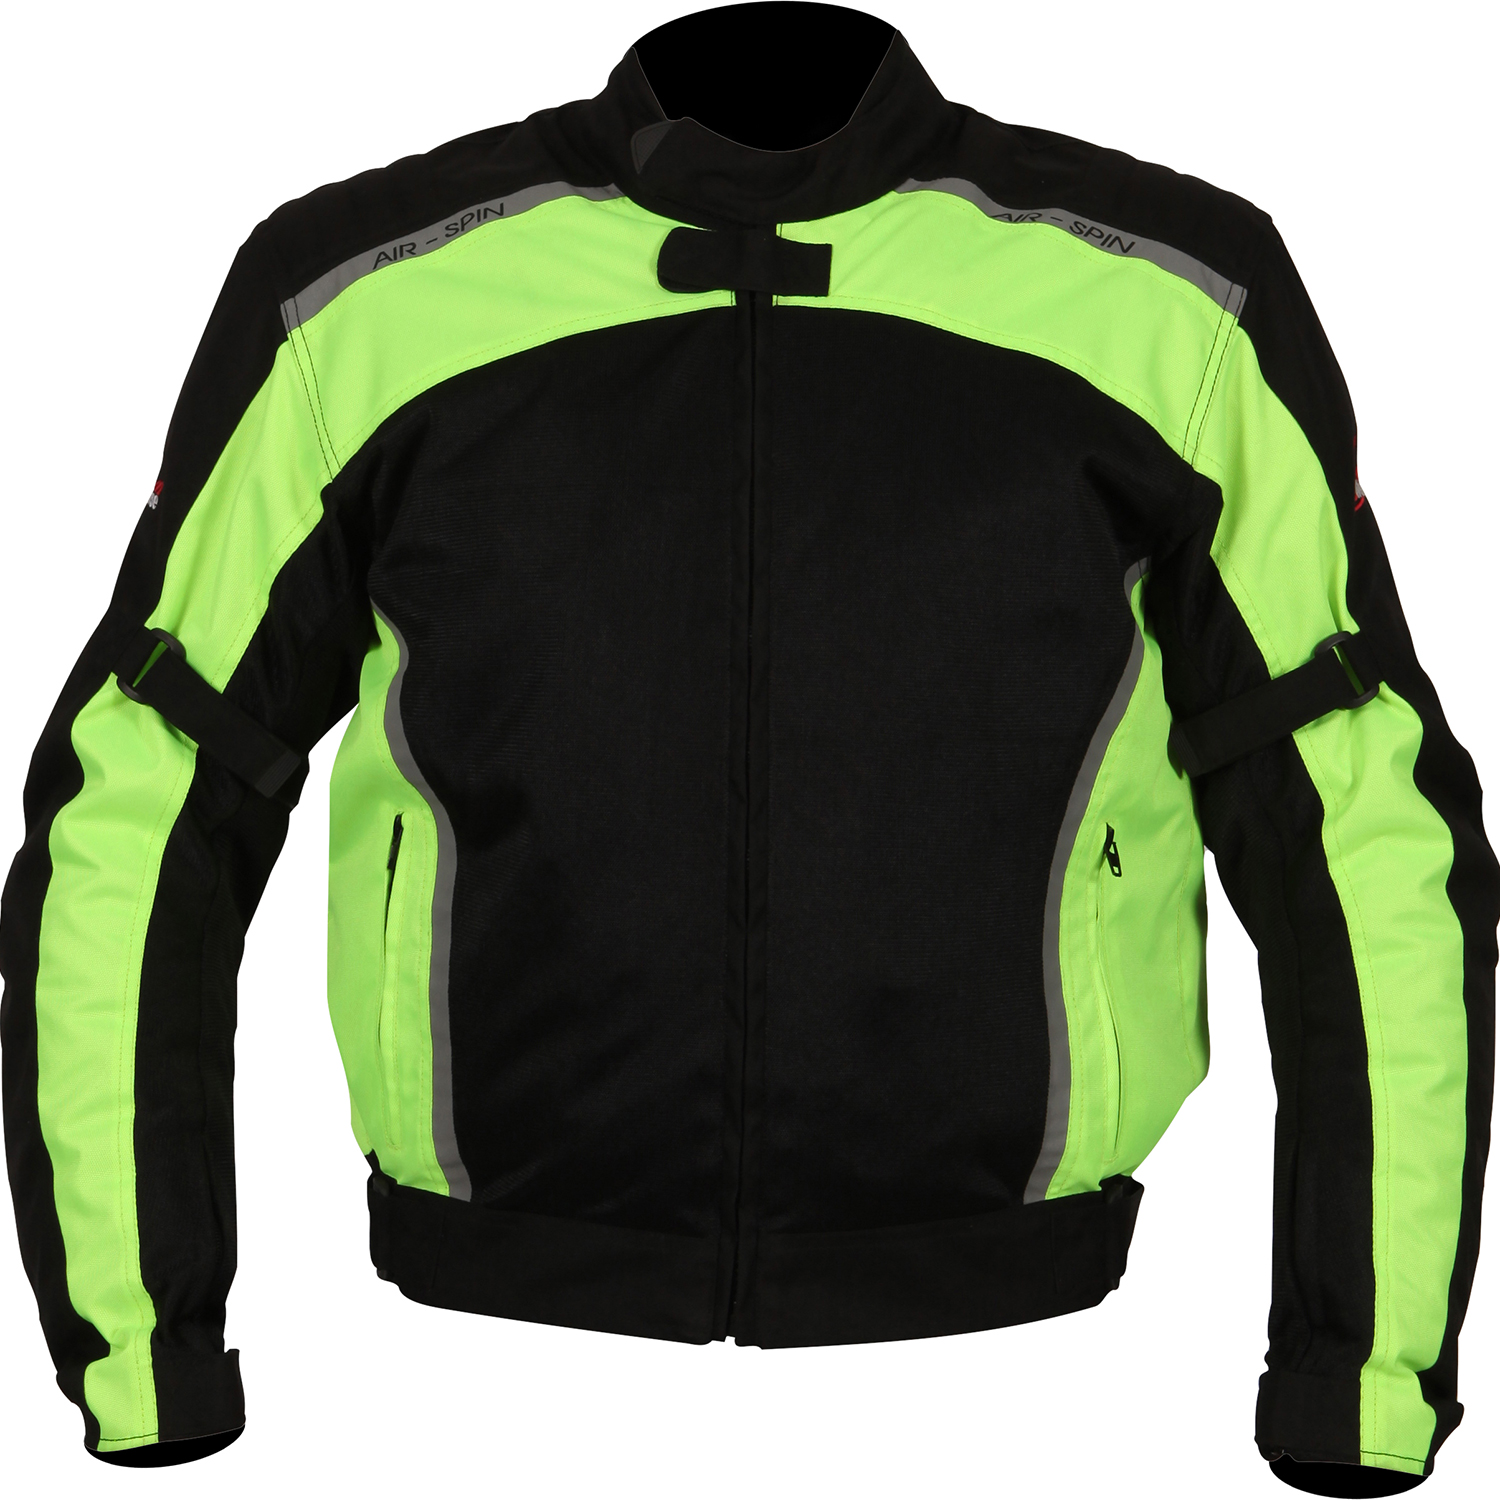 WEISE AIR SPIN WATERPROOF AND VENTED SUMMER MOTORCYCLE MOTORBIKE TROUSERS